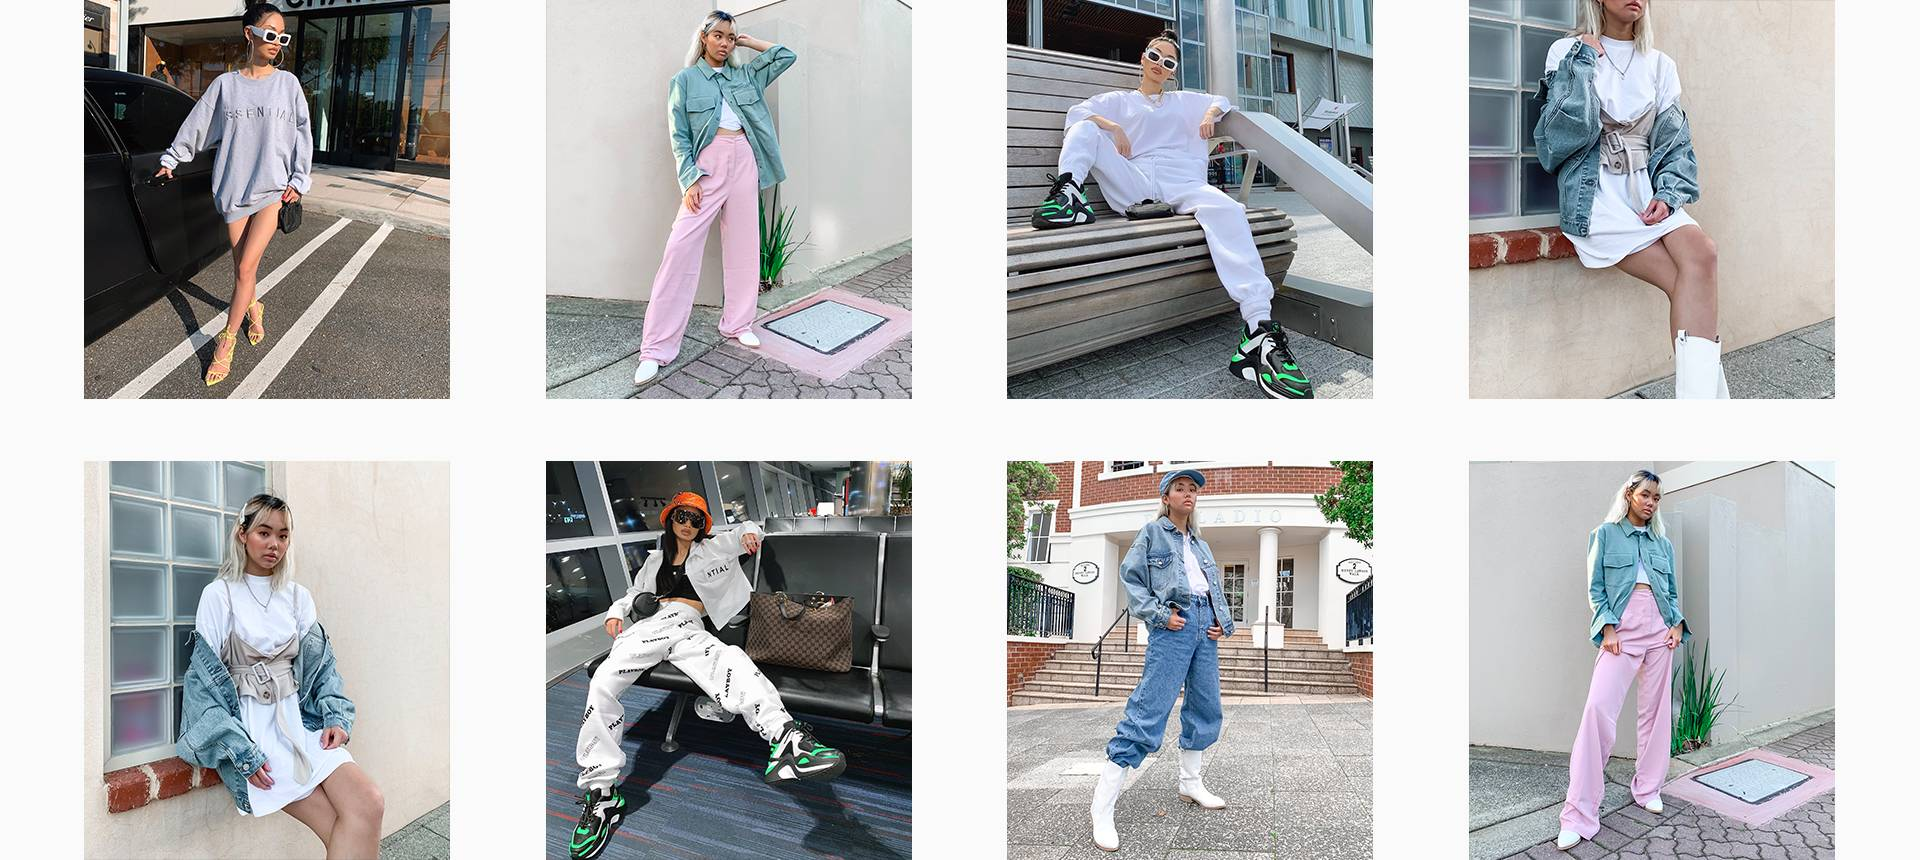 213556b5377663 Women's Clothes | Fashion Shopping Online - Missguided